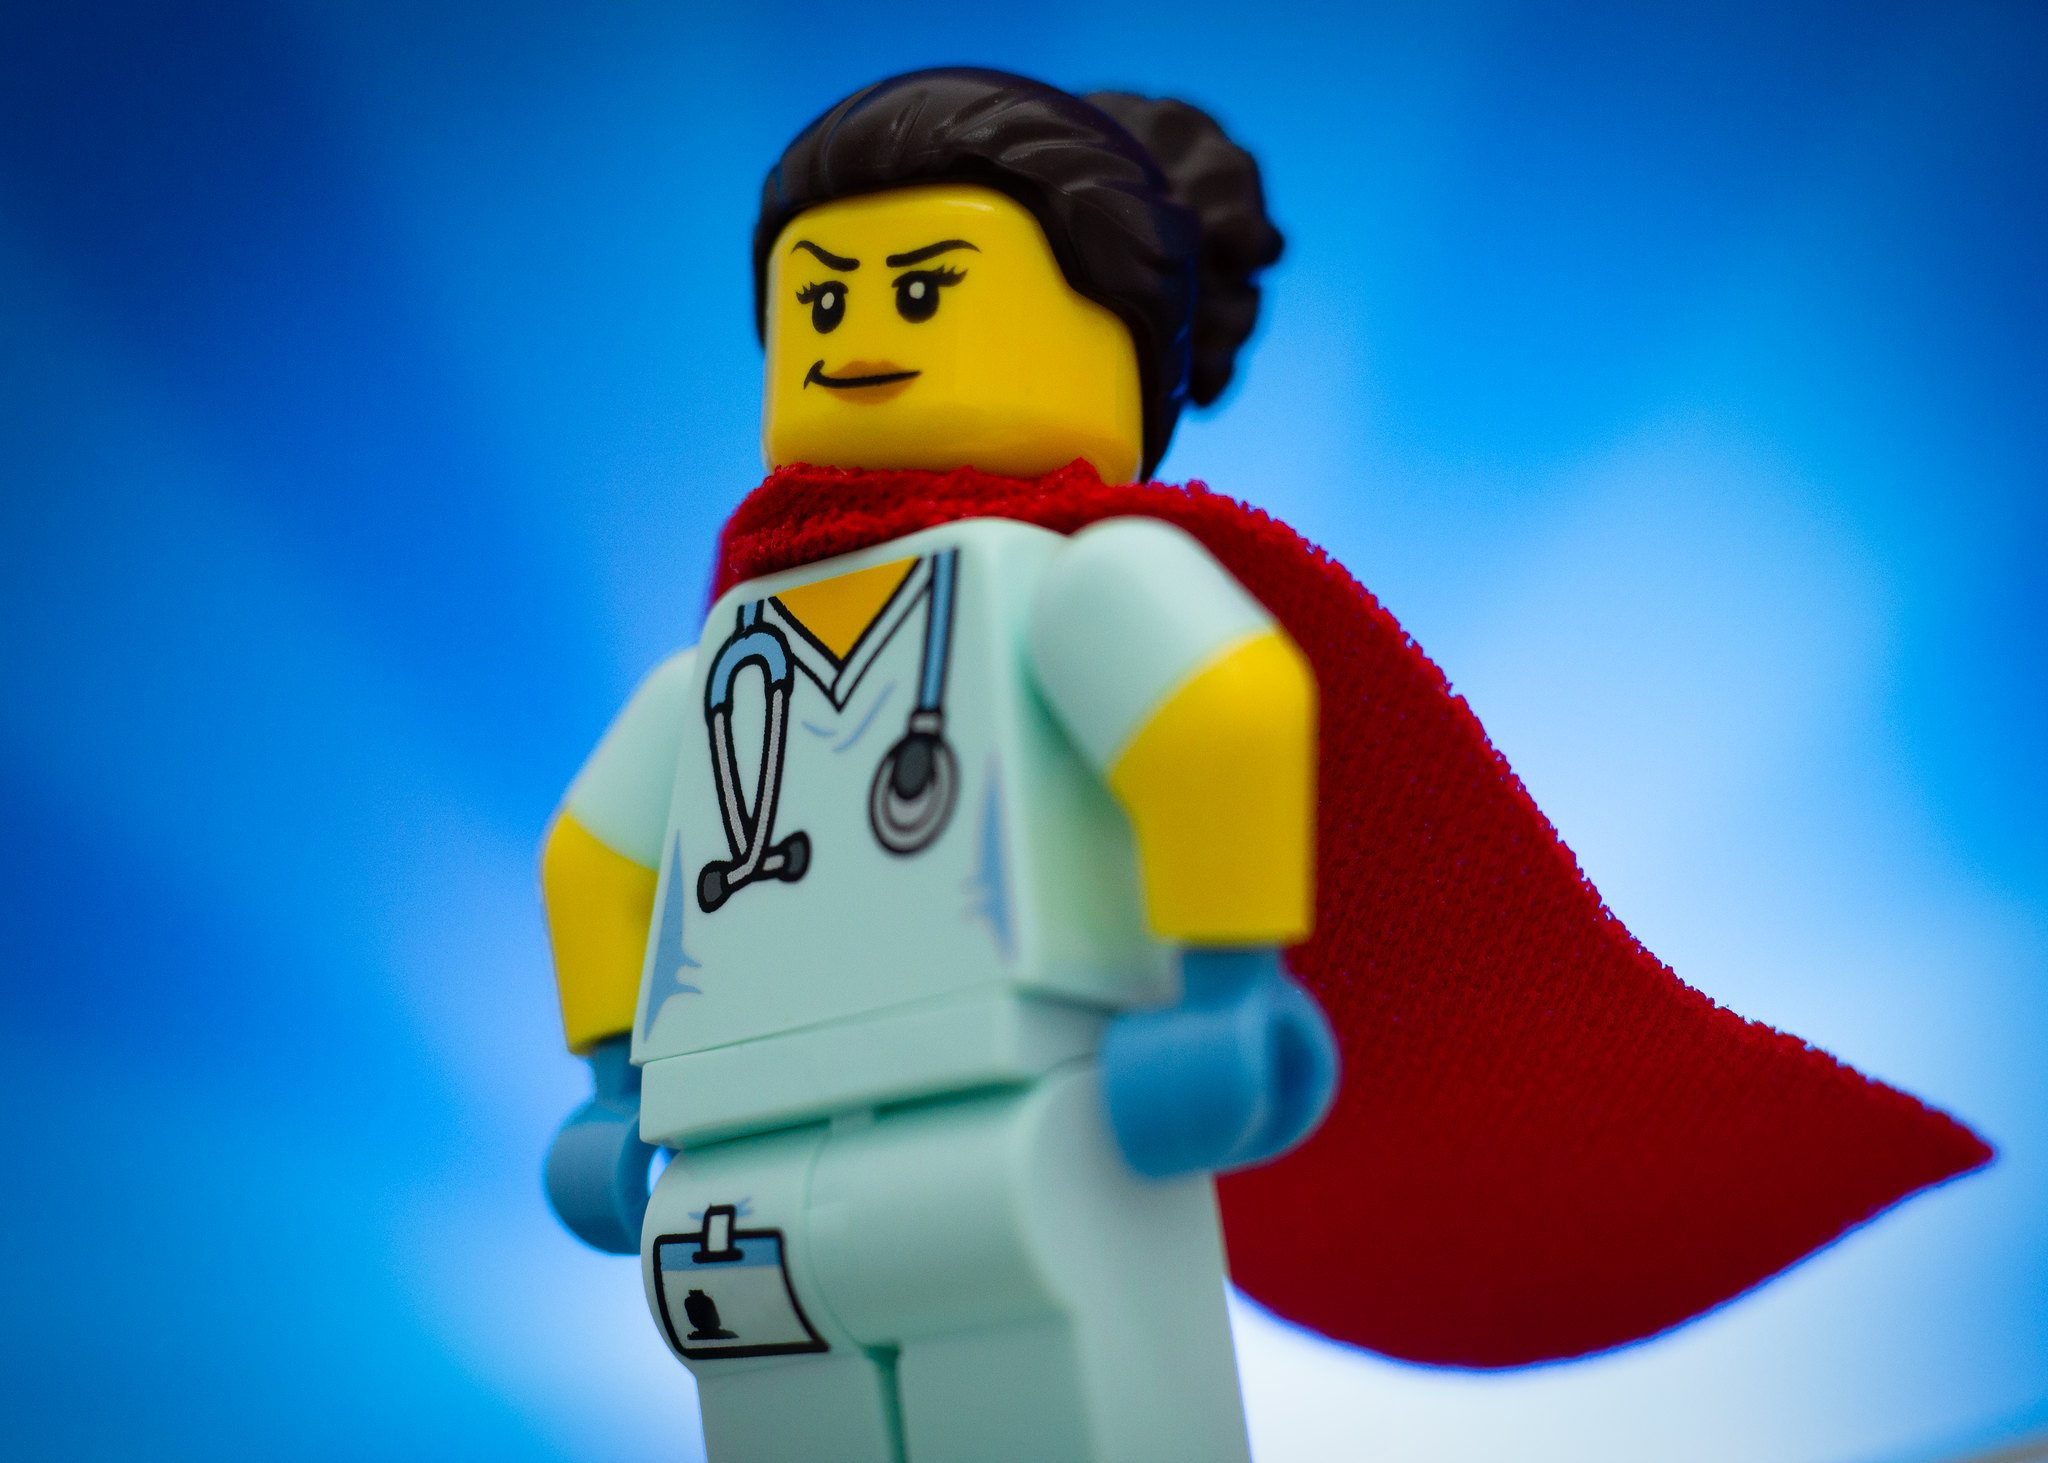 A LEGO doctor in a cape, who knows how to treat DOMS.